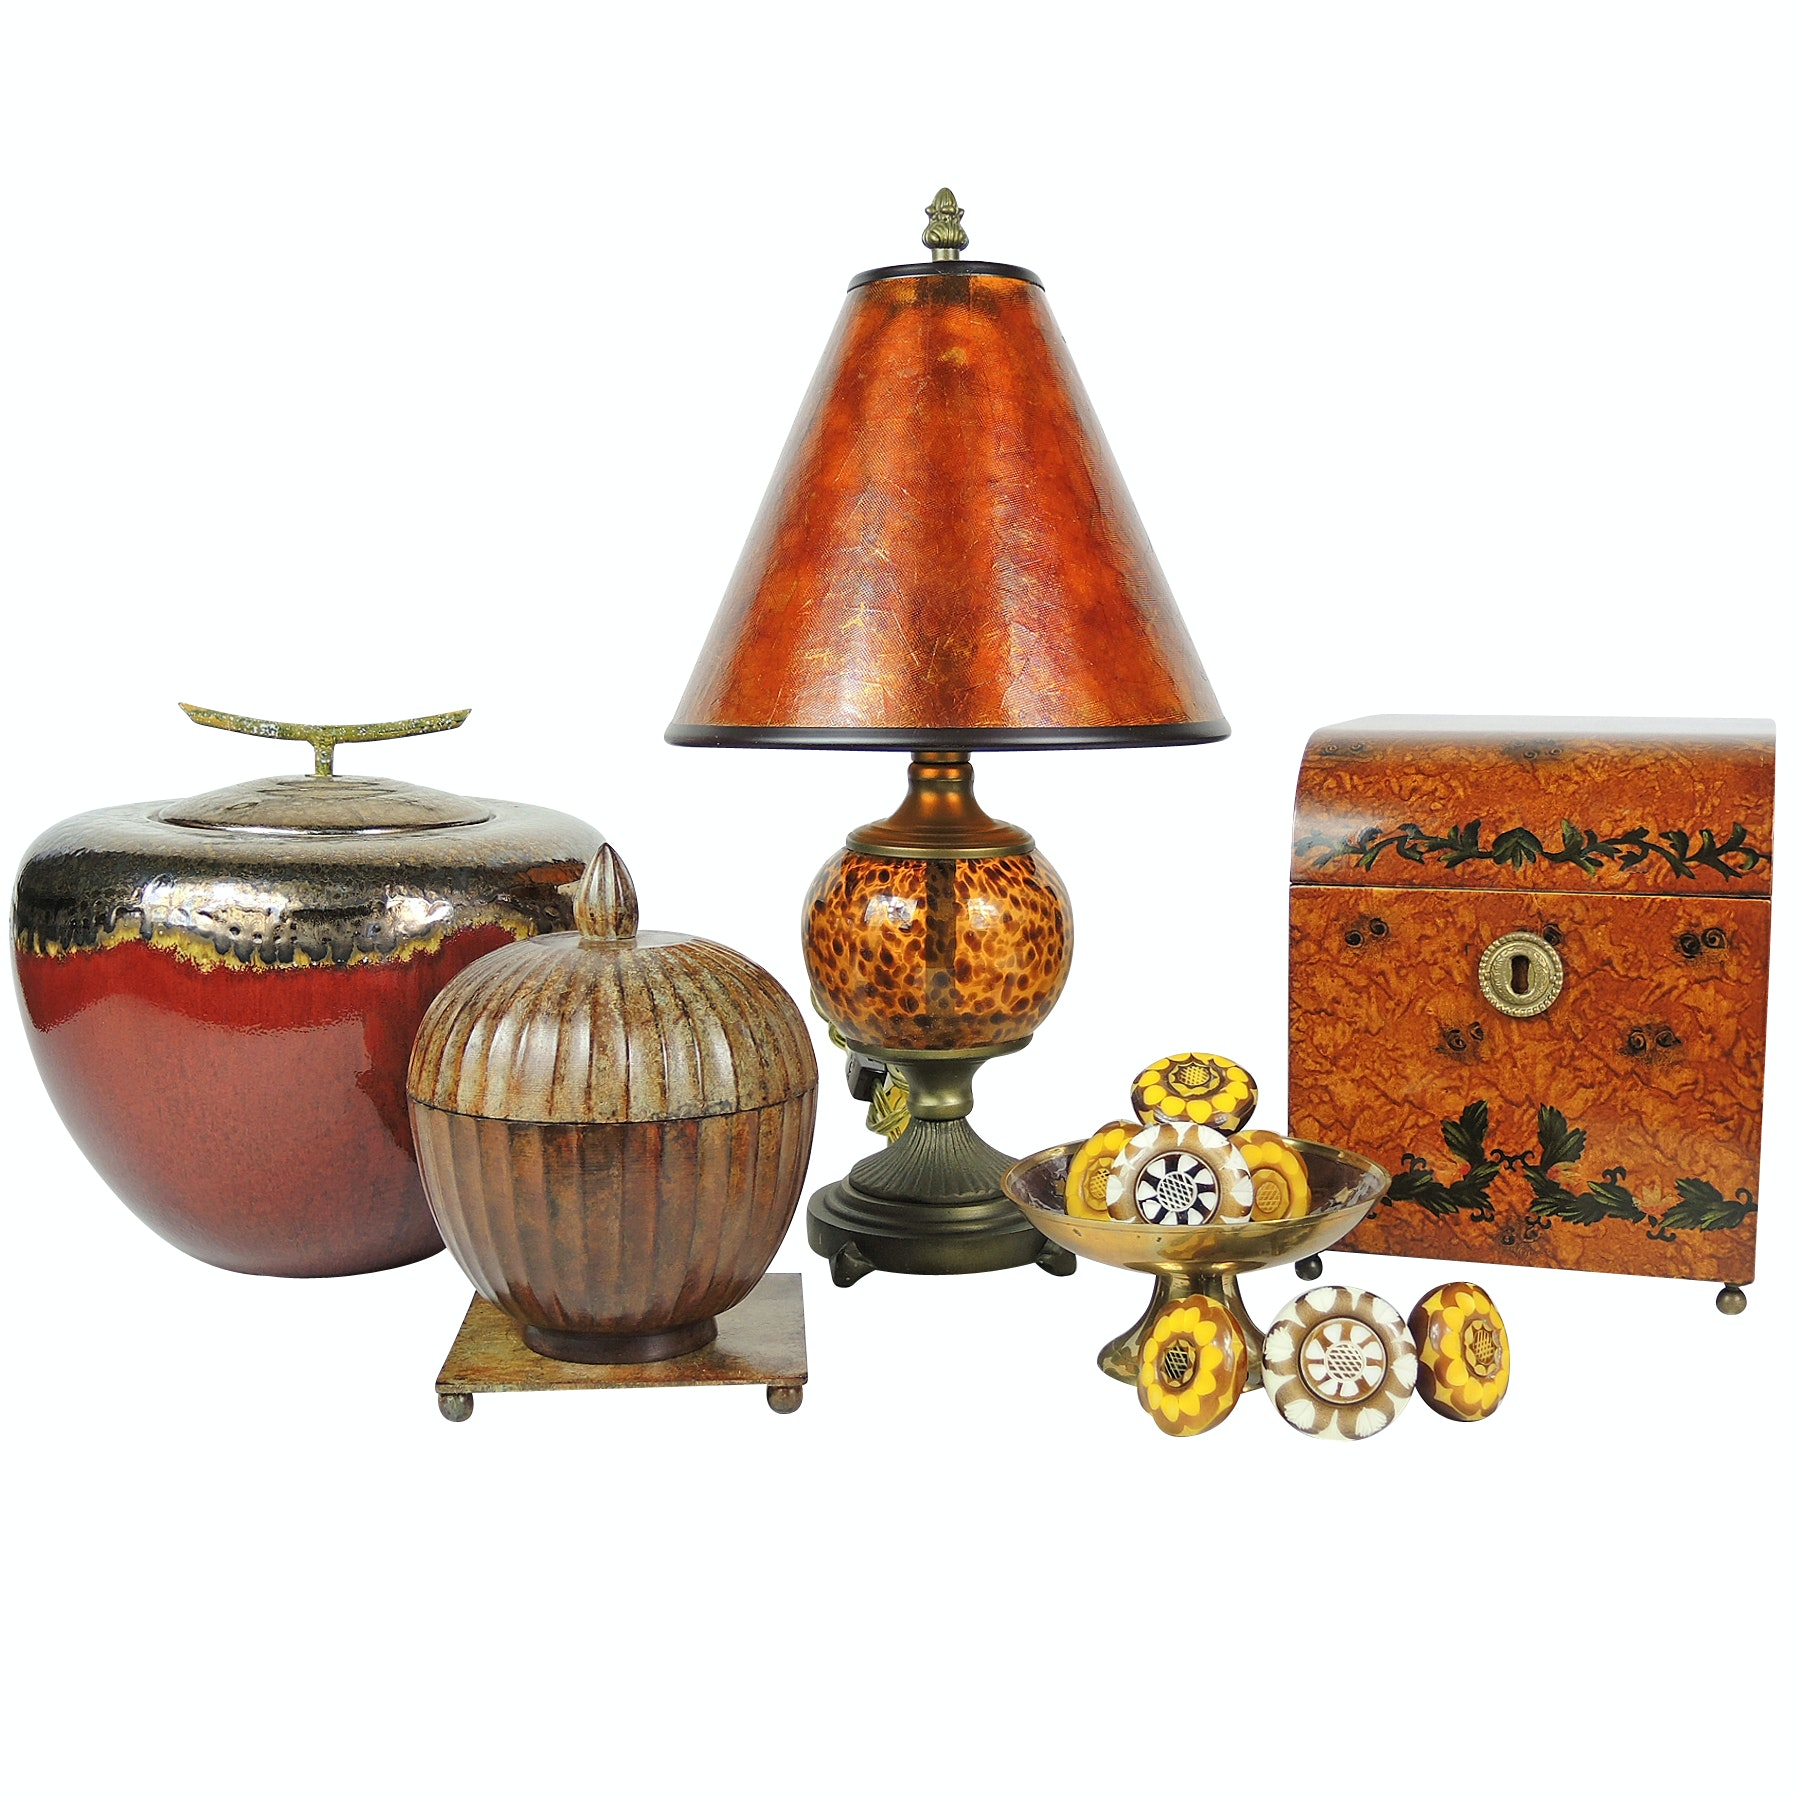 Home Interior Decor With Drawer Pulls, Amber Glass Table Lamp and Vessels